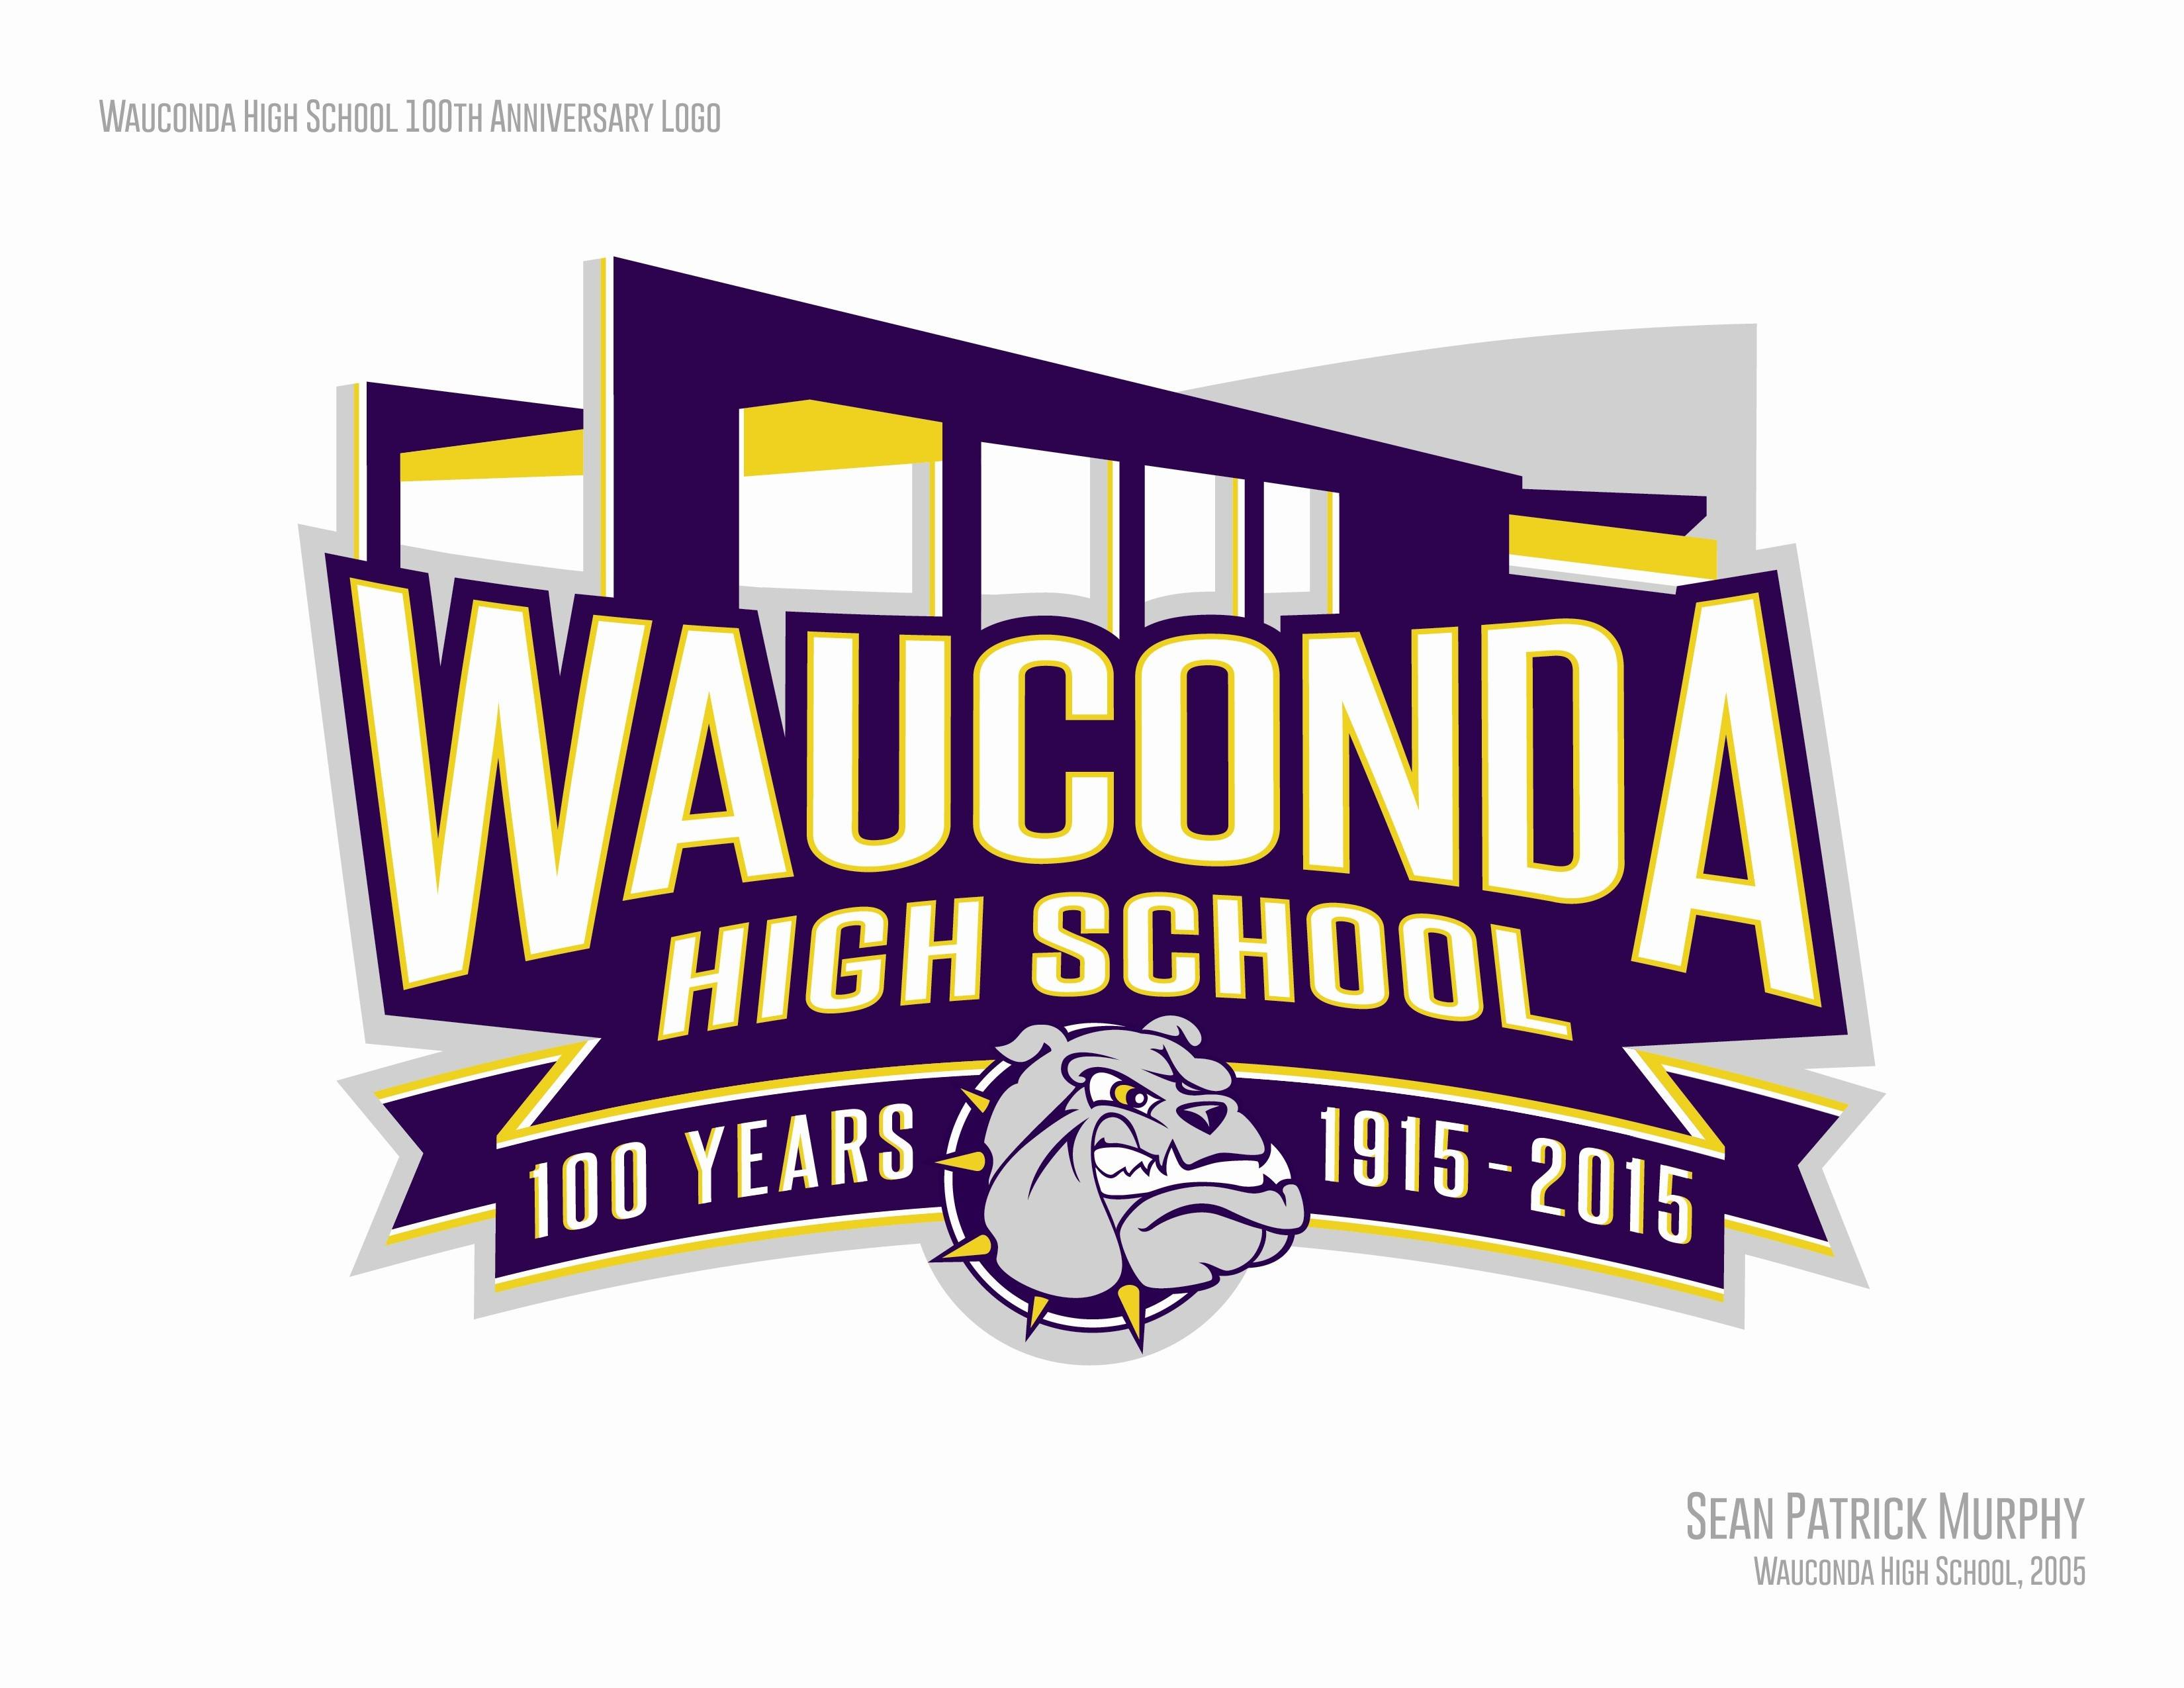 Snarling bulldog featured on special Wauconda High logo